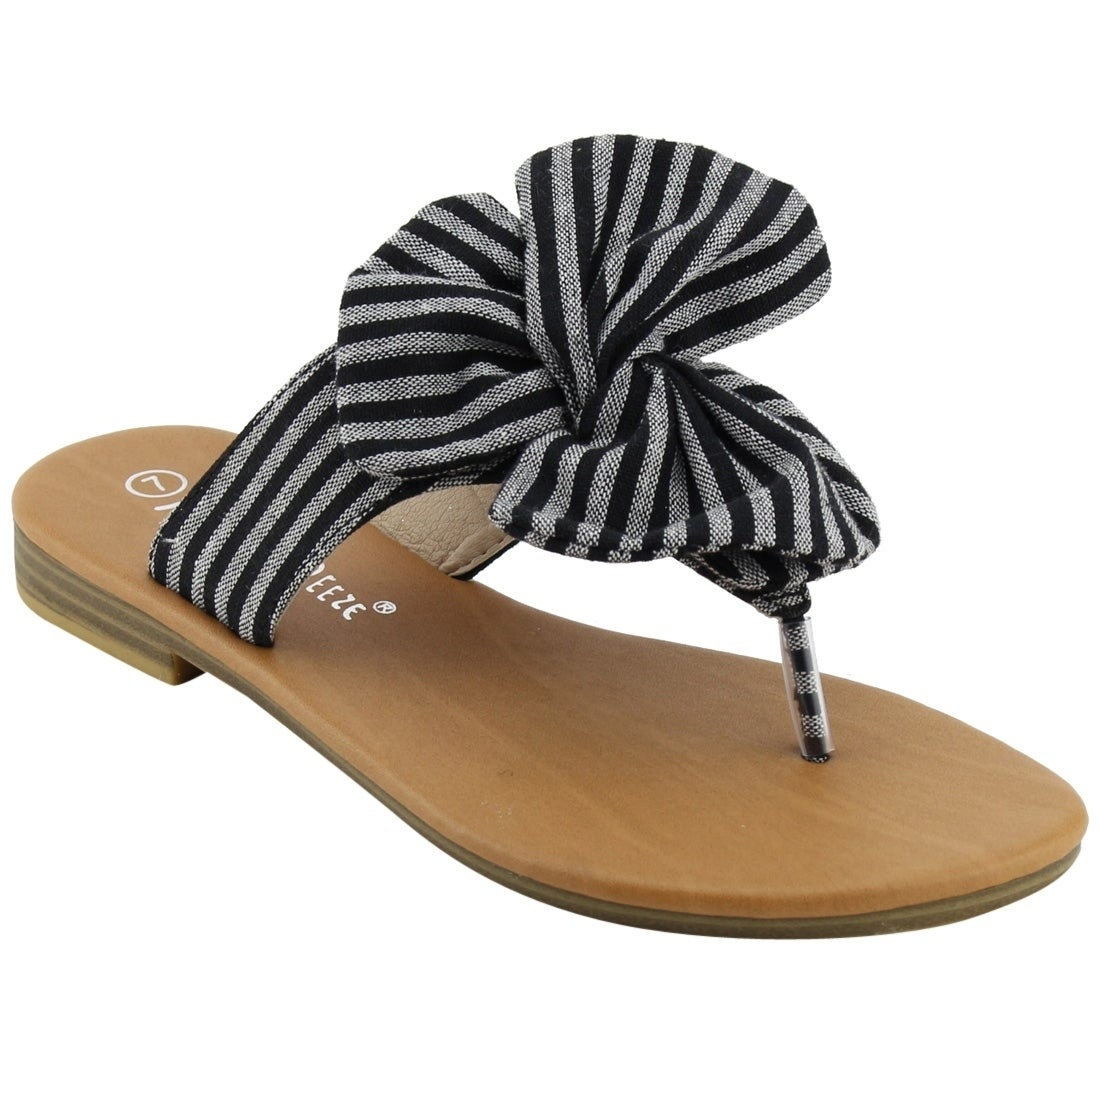 87d75518235e Shop NATURE BREEZE EM13 Women s Striped Bow Thong Flip Flop Flat Sandals -  Free Shipping On Orders Over  45 - Overstock - 20036963